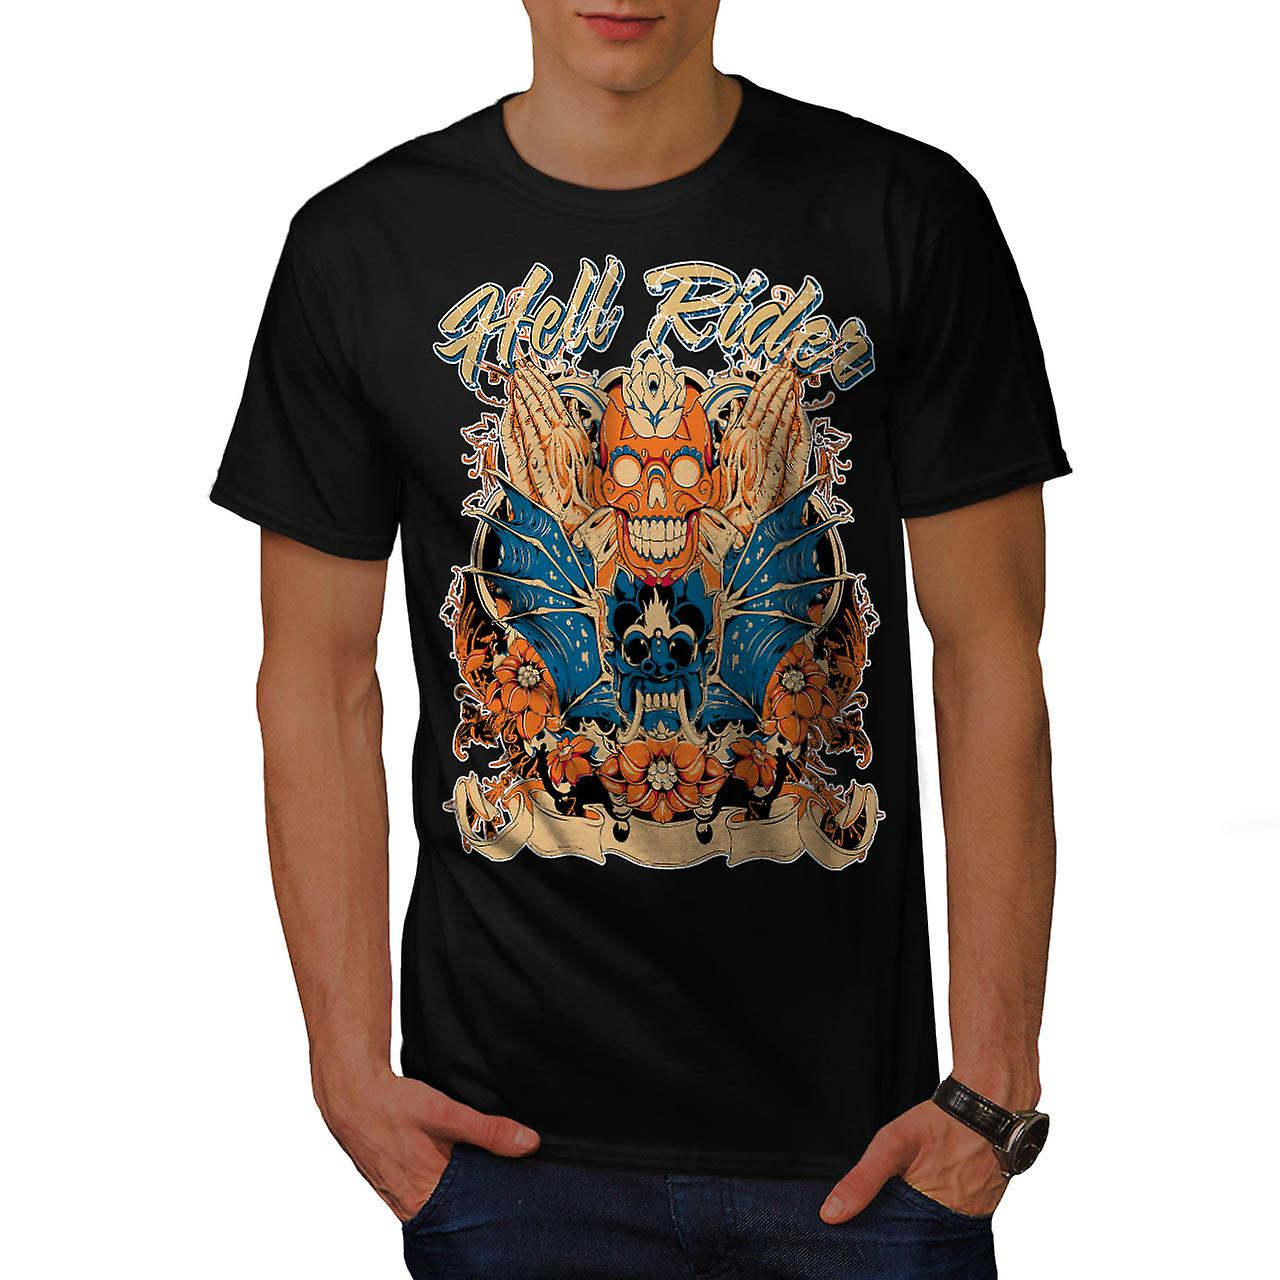 Helvetet Rider Samurai Warrior Mask män svart T-shirt | Wellcoda